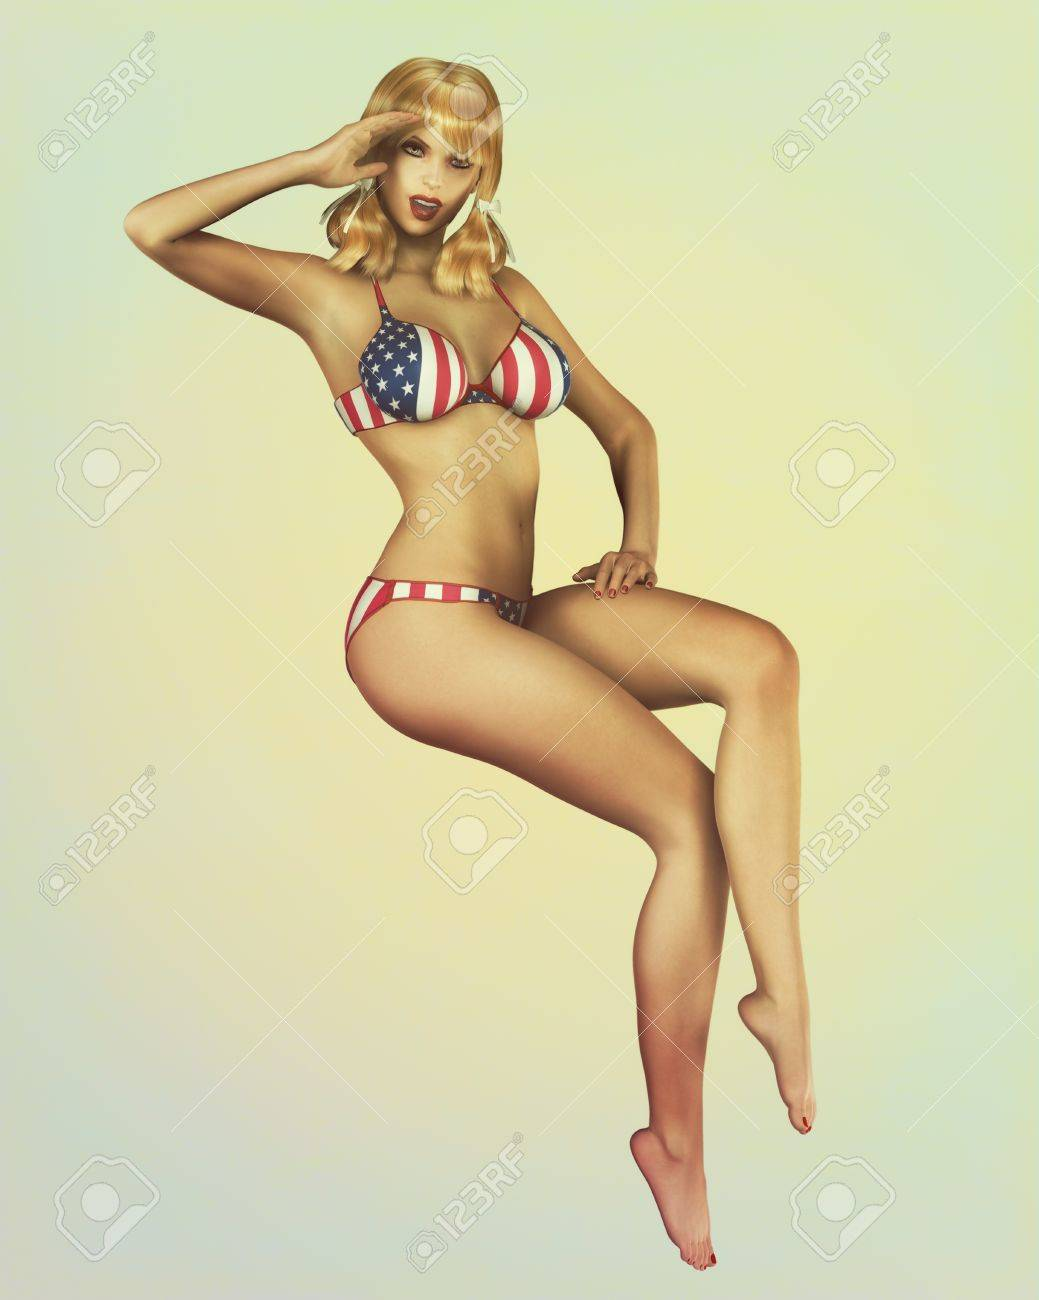 A Retro Styled Vintage Pinup Illustration Of A Sexy Blond Model Stock Photo Picture And Royalty Free Image Image 12474863